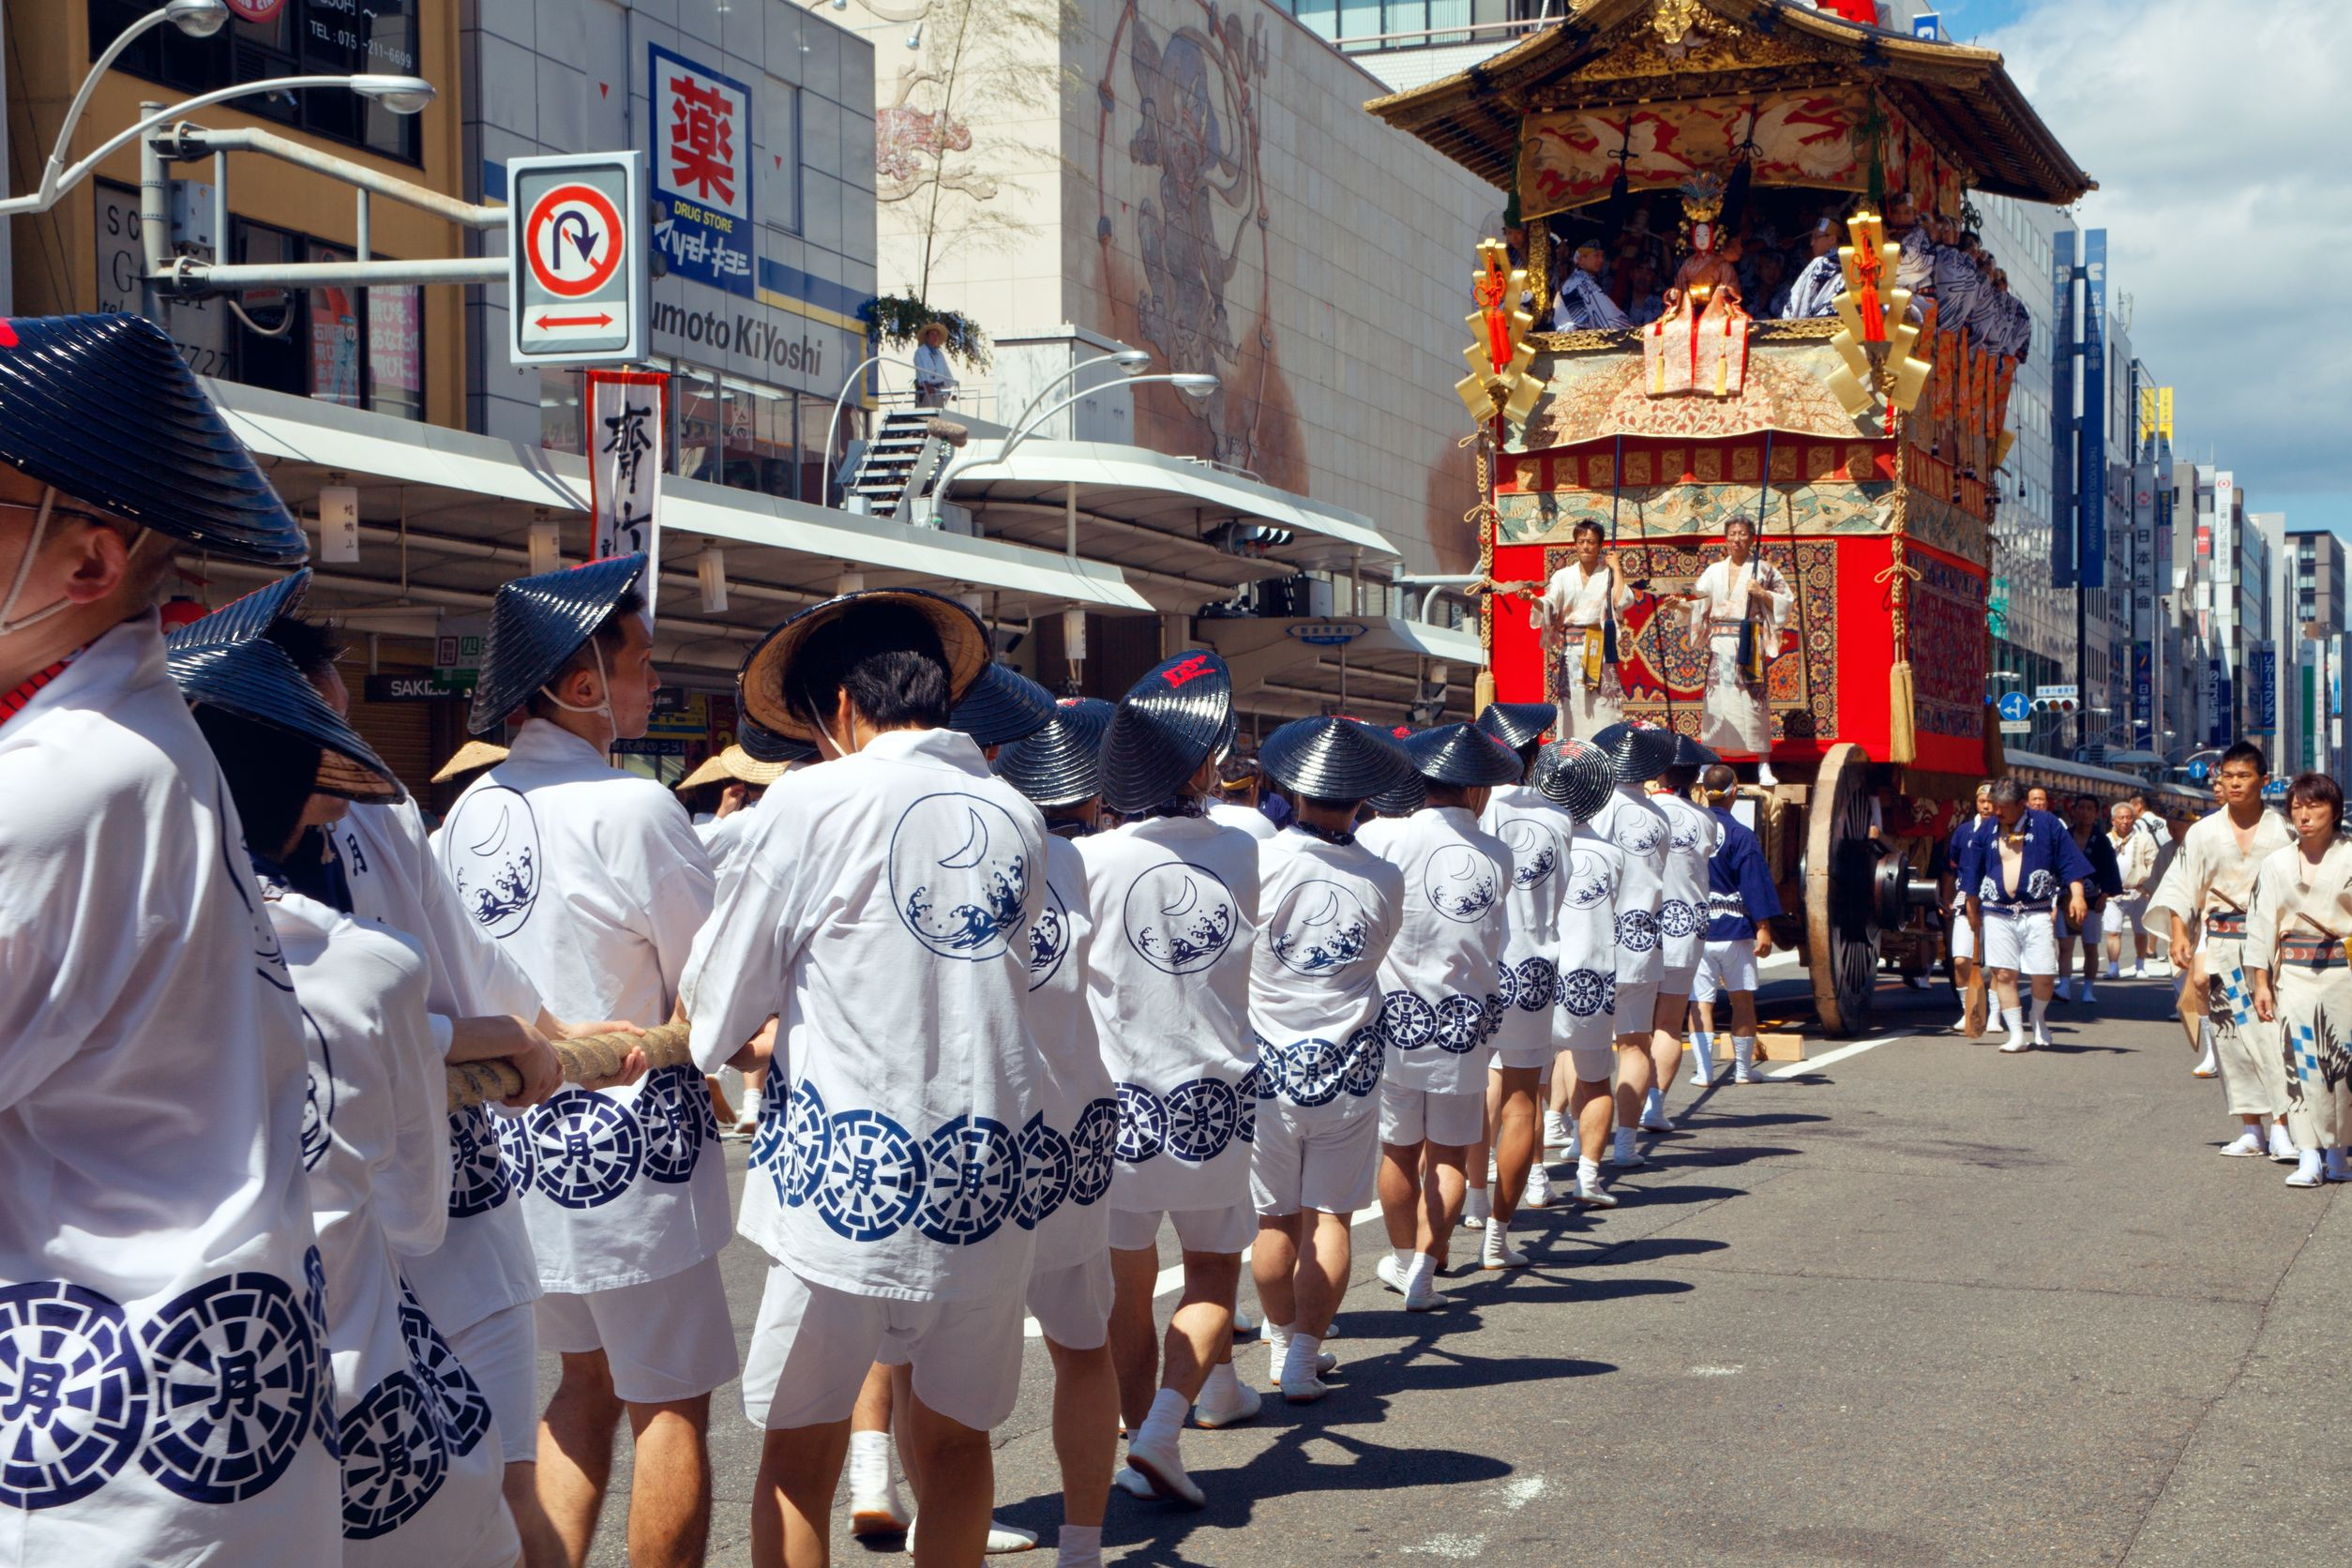 Source: http://www.worldfestivaldirectory.com/wp-content/uploads/2012/06/The-Gion-Festival-Gion-Matsuri-takes-place-annually-in-Kyoto-and-is-one-of-the-most-famous-festivals-in-Japan.jpg